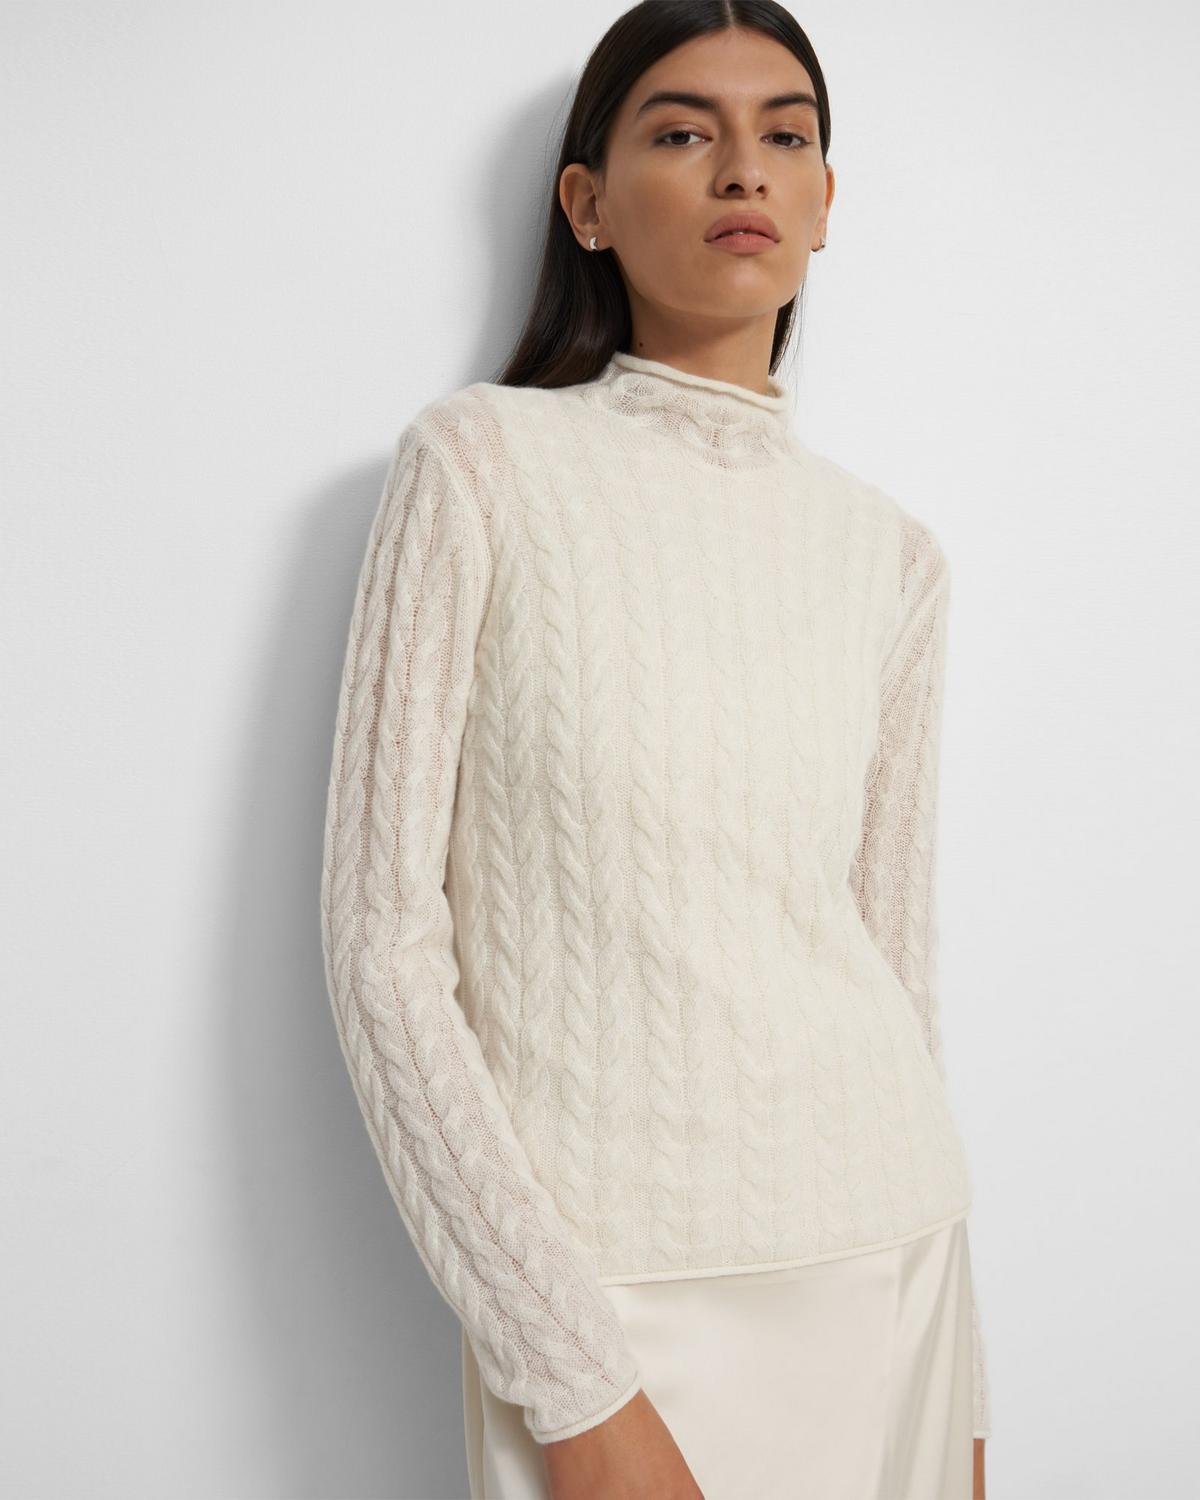 Roll Neck Sweater in Cable Knit Cashmere 0 - click to view larger image